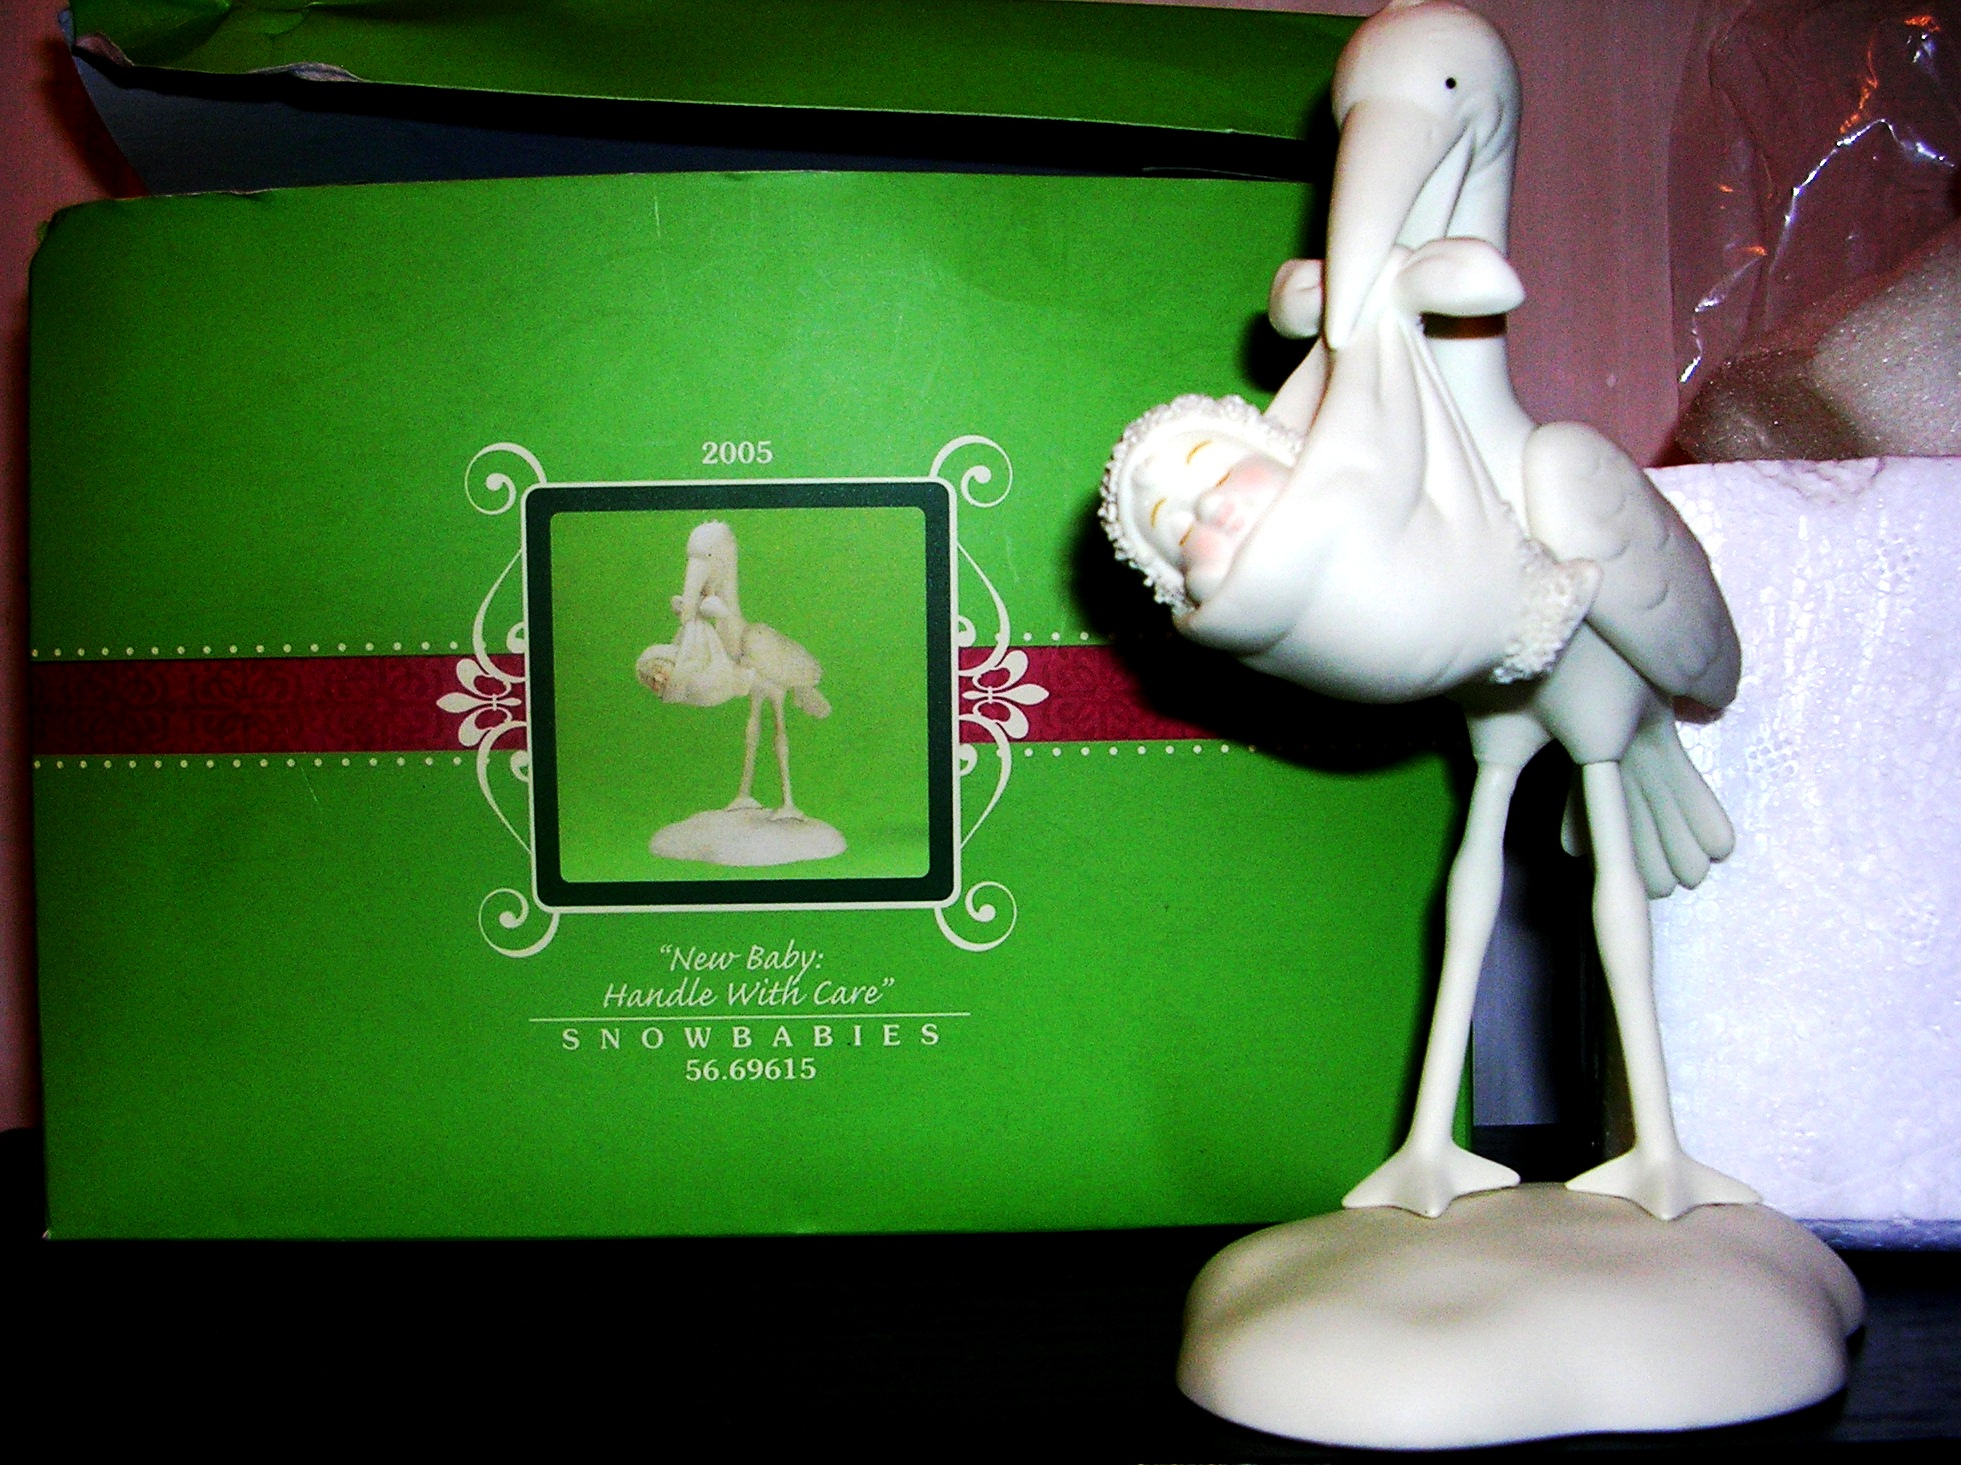 Snowbabies Dept 56 New Baby Handle With Care 2005